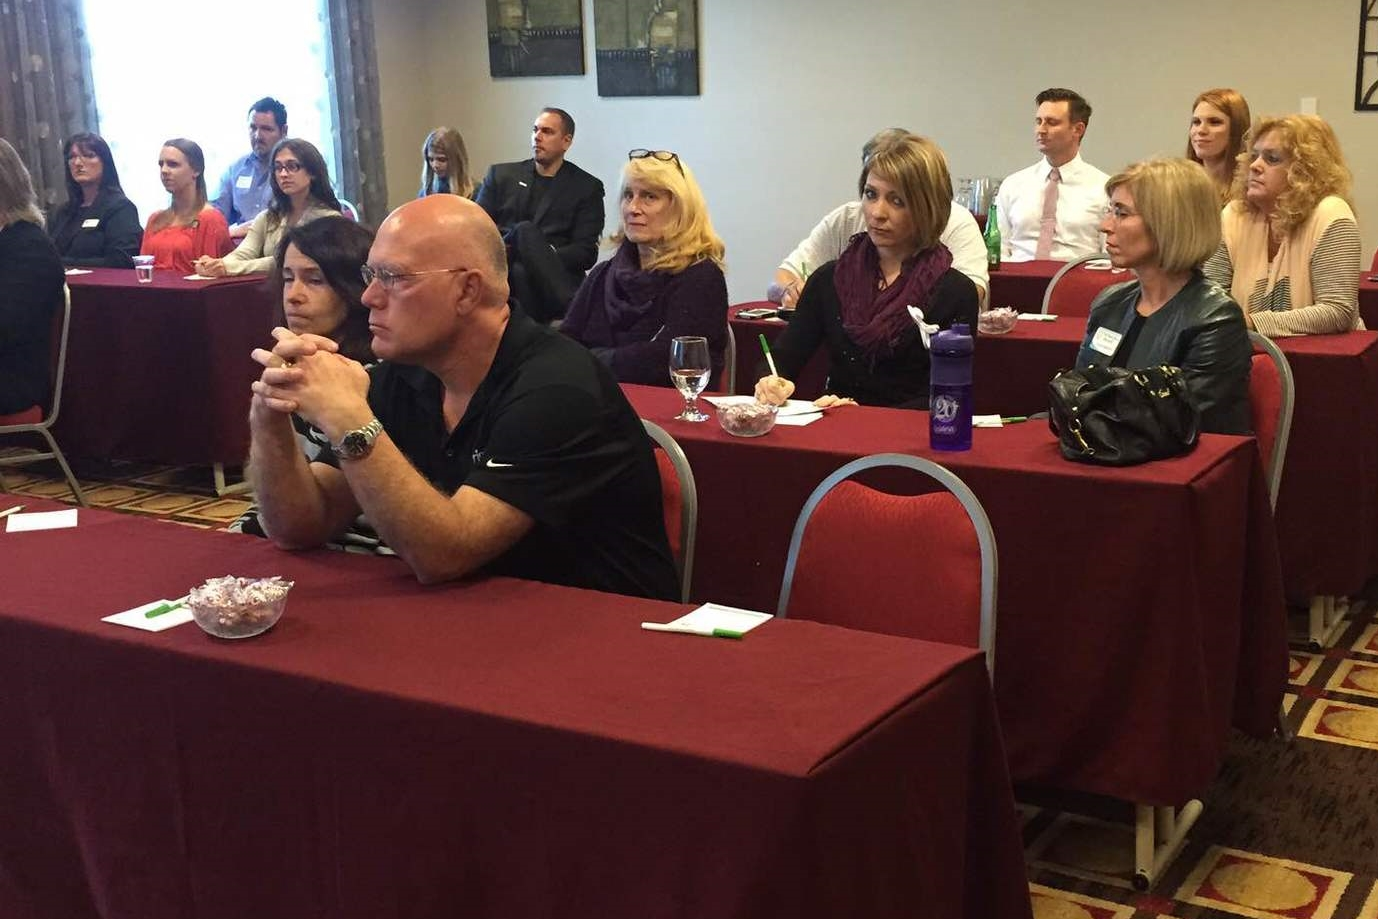 It was a full house for the How to Network Brilliantly Technology Demo at the Fort Myers Airport Holiday Inn on February 20th.